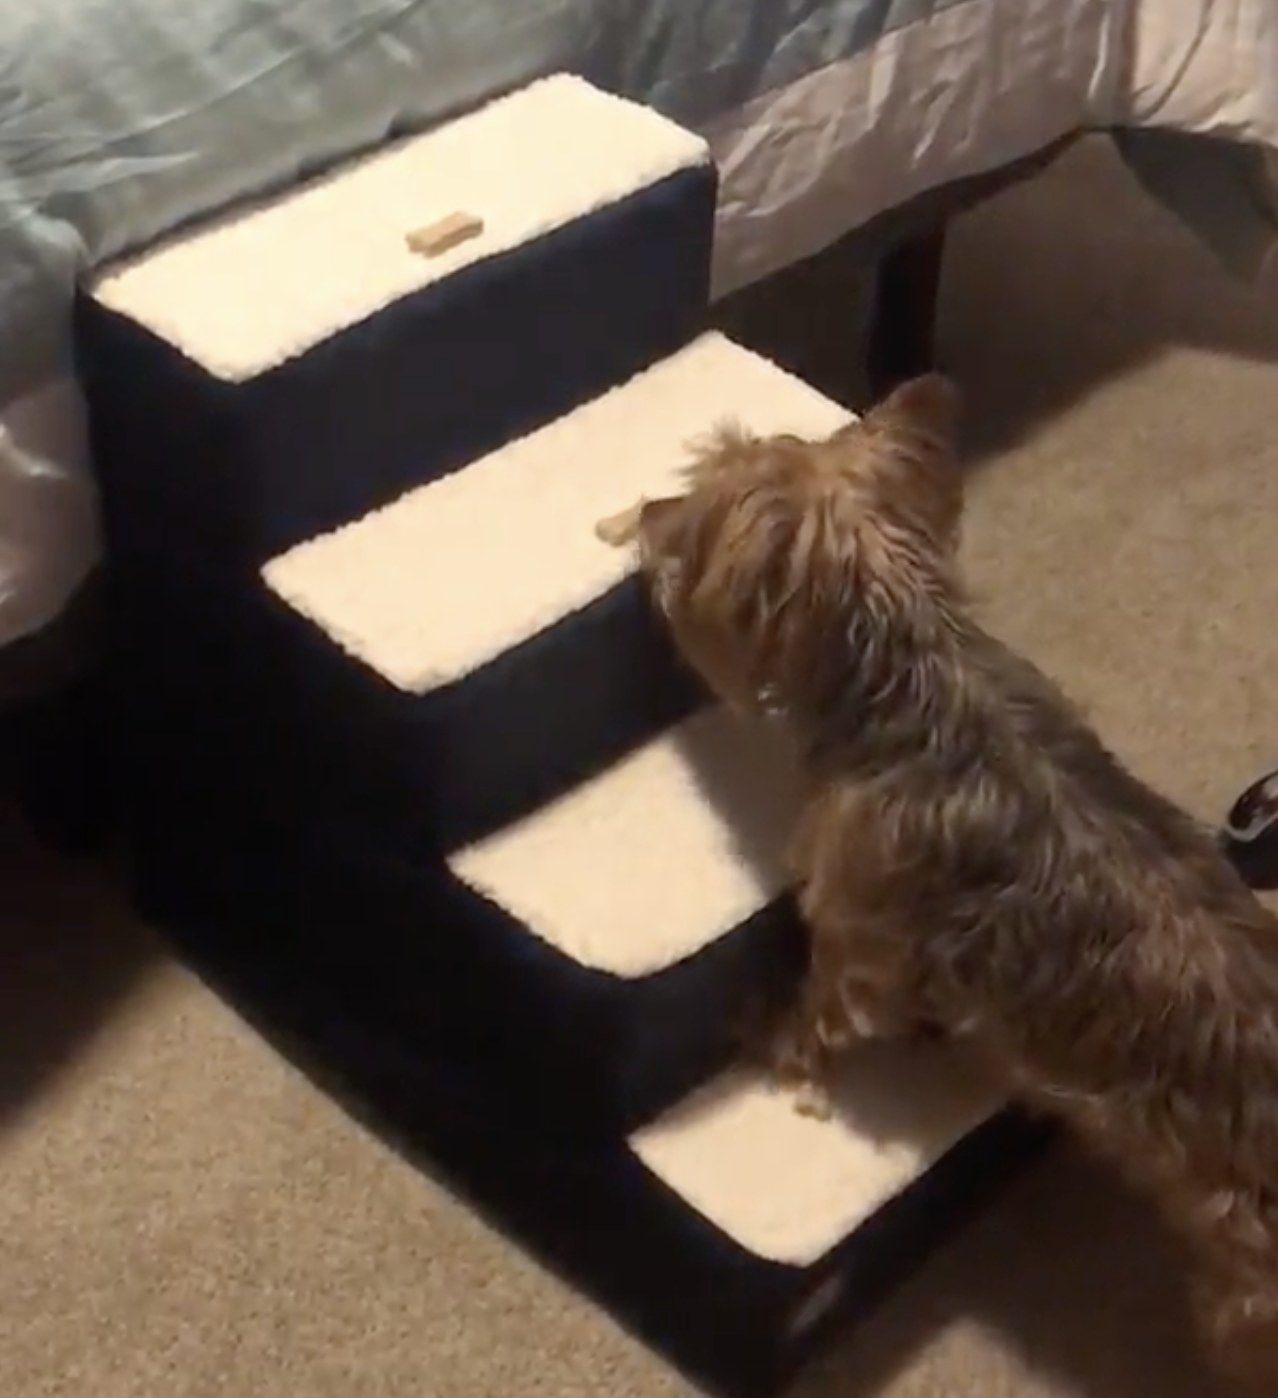 A dog walking up pet stairs